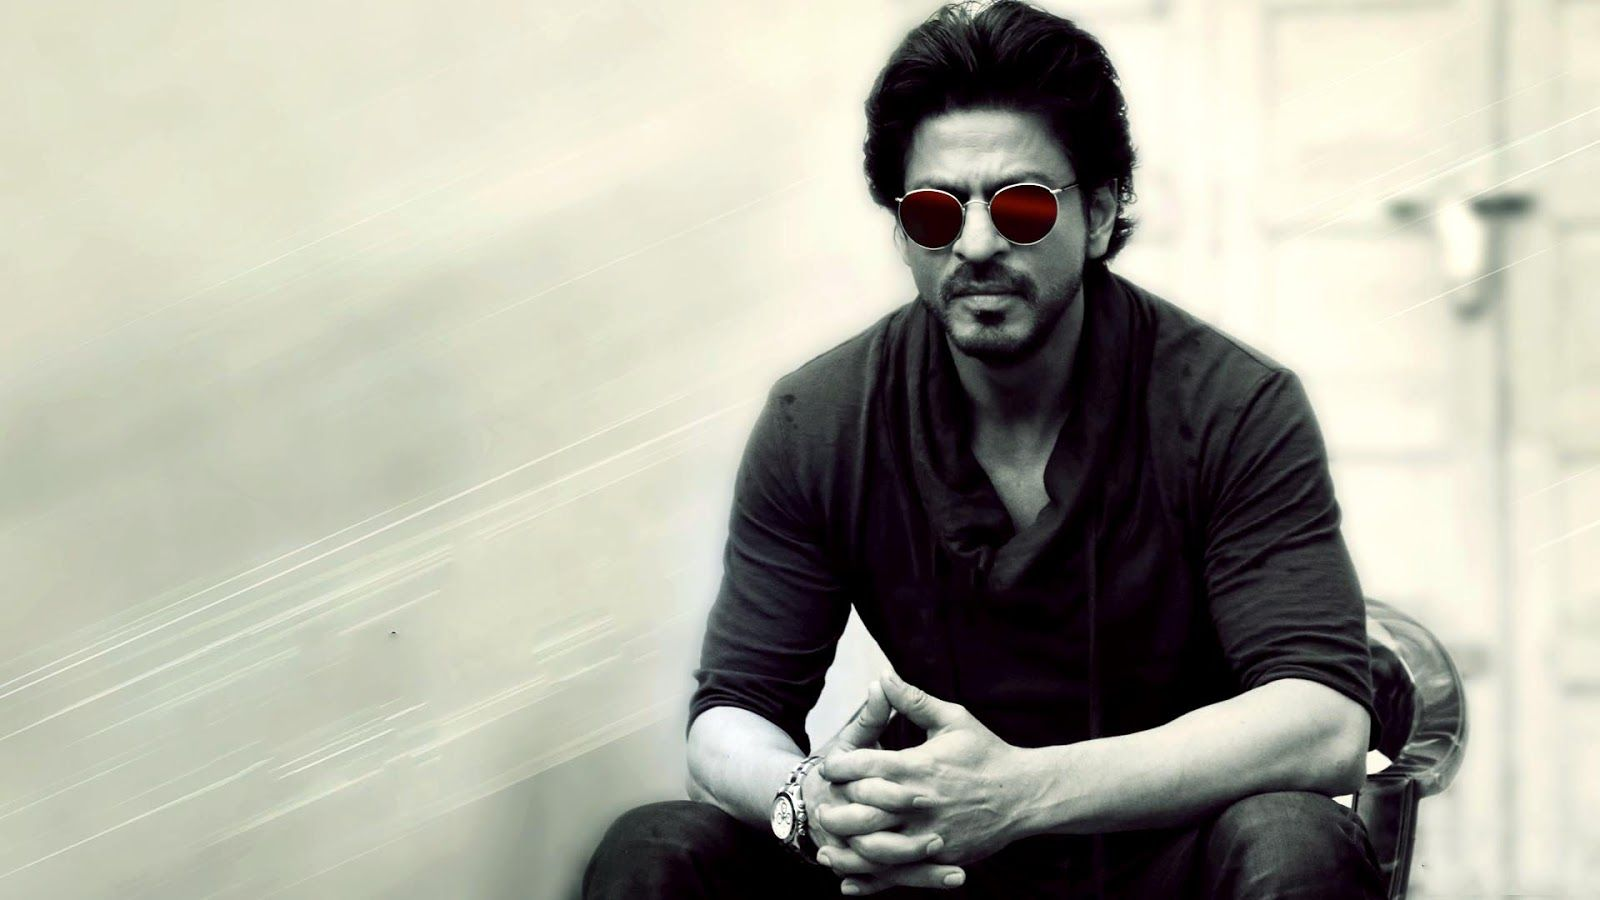 shahrukh khan wallpapers hd download free 1080p | shah rukh khan